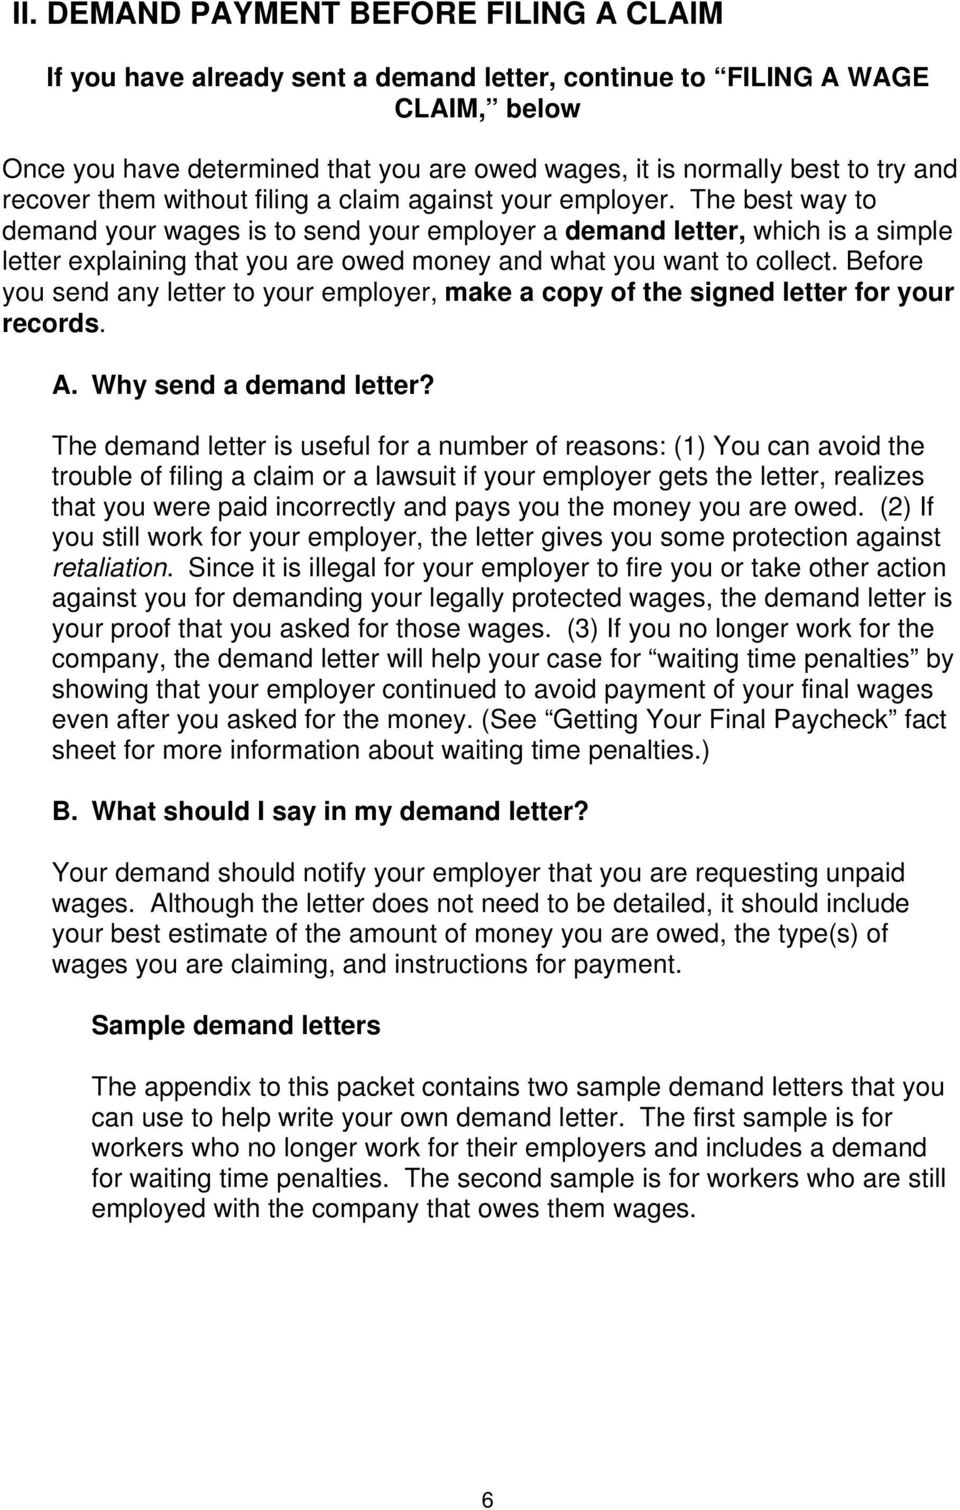 The best way to demand your wages is to send your employer a demand letter, which is a simple letter explaining that you are owed money and what you want to collect.